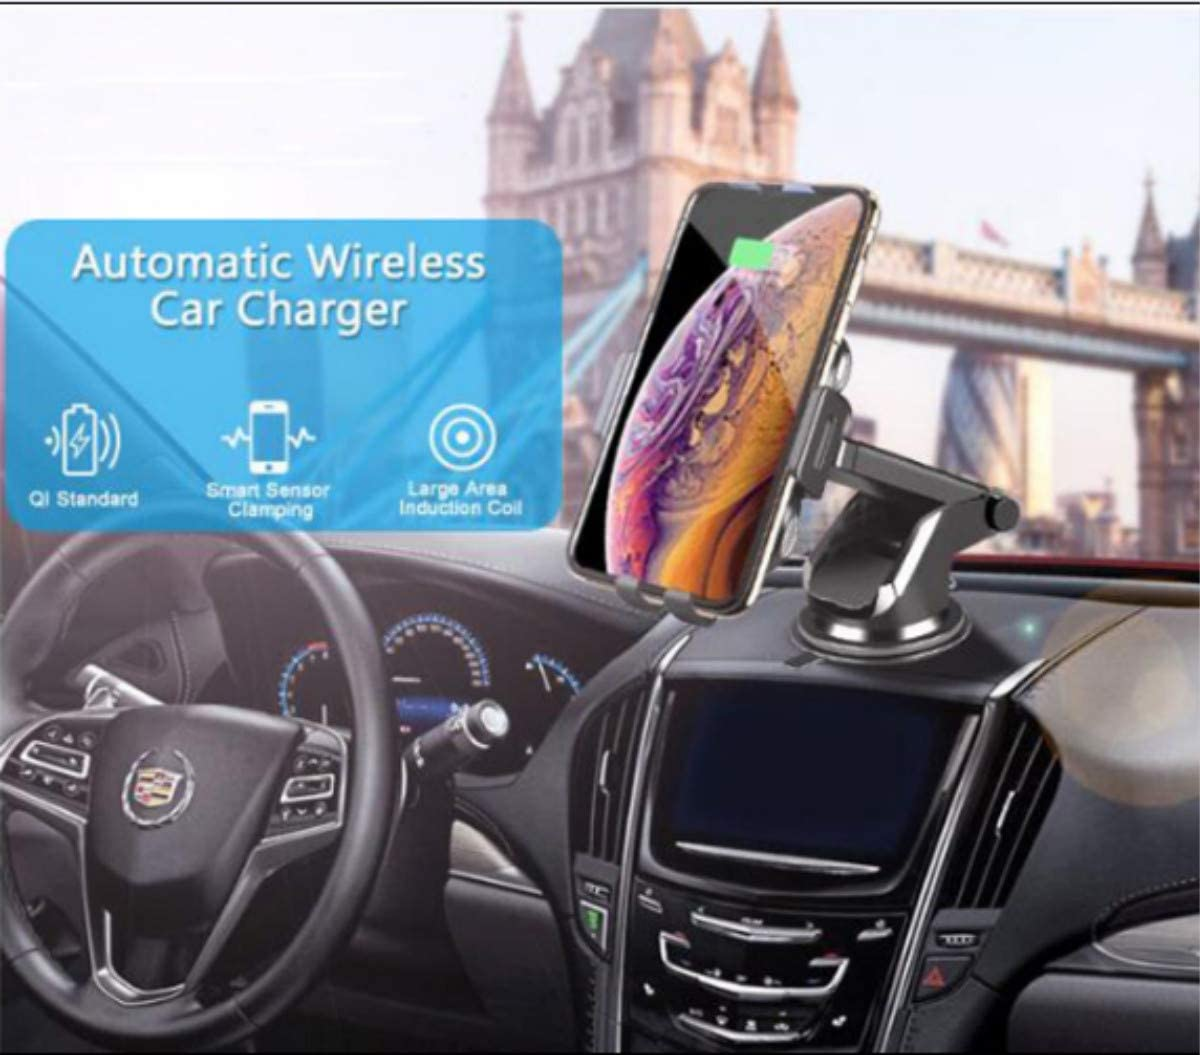 Samsung Galaxy S10//S10+//S9//S9+//S8//S8+ dolbiway Magnetic Wireless Car Charger 10W//7.5W Qi Fast Charging Car Charger Mount Air Vent Phone Holder Compatible with iPhone 11//11 Pro//Xs//Max//Xs//XR//X//8//8+